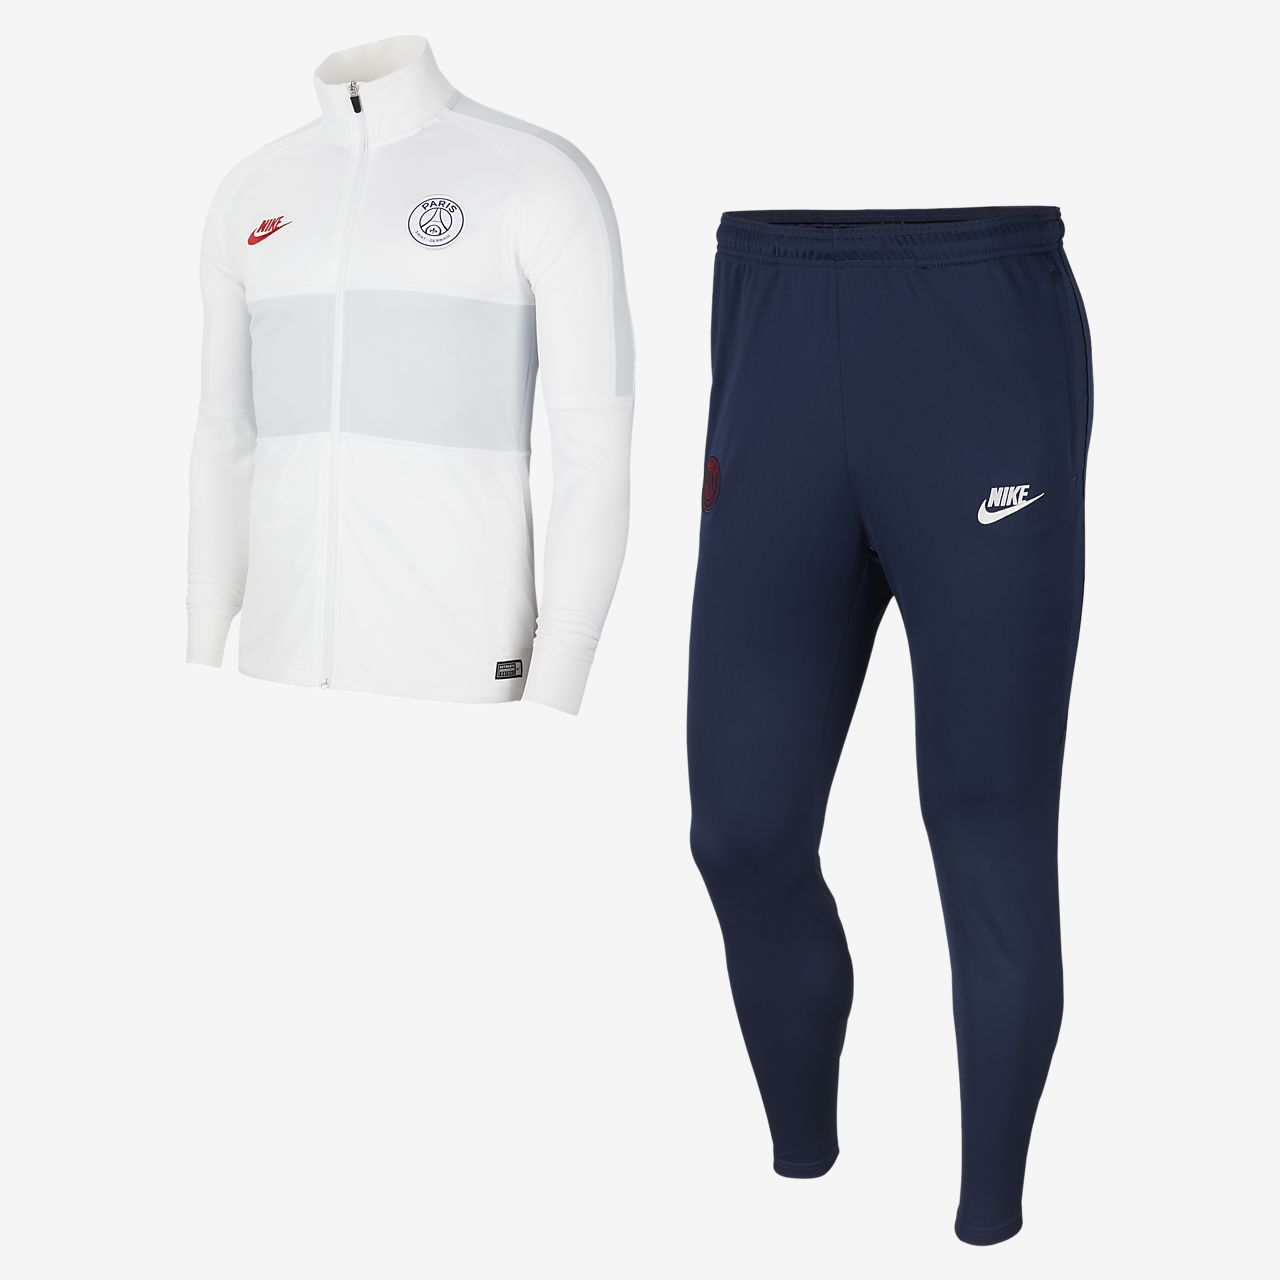 Nike Dri-FIT Paris Saint-Germain Strike Voetbaltrainingspak voor heren